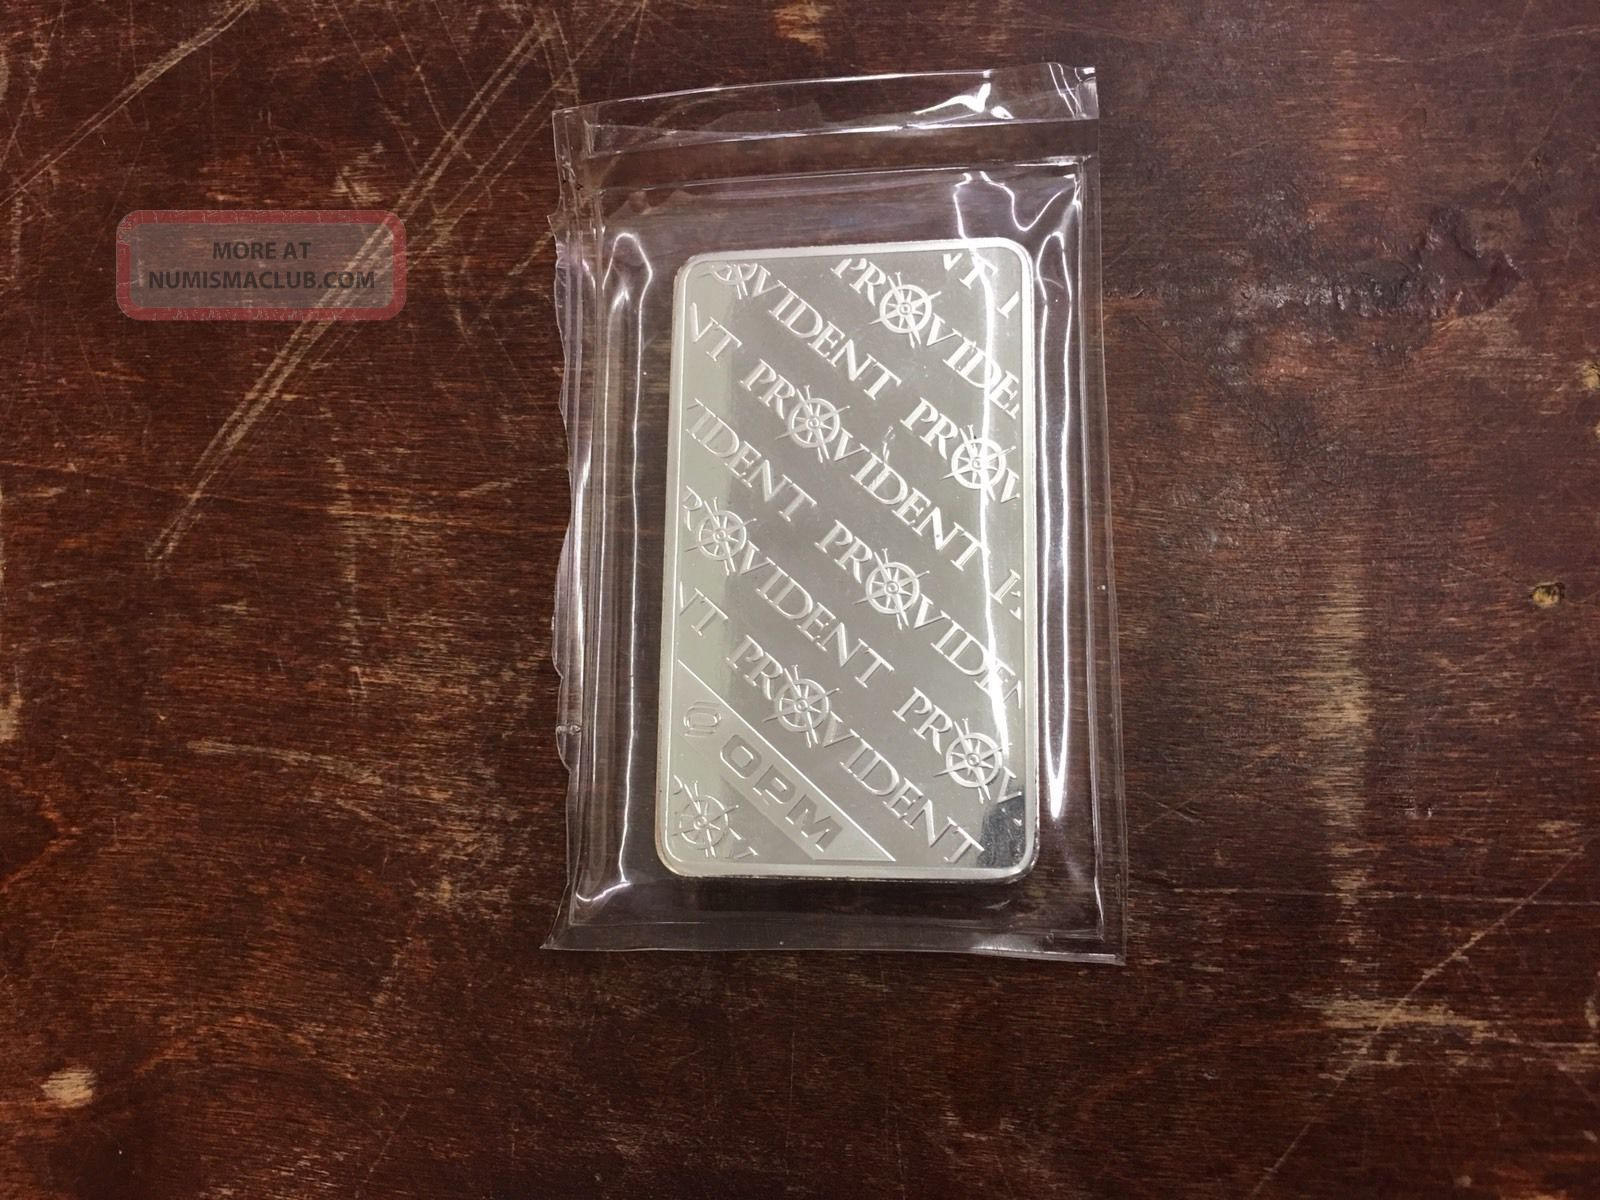 10 Oz Provident Metals 0 999 Fine Silver Bullion Bar